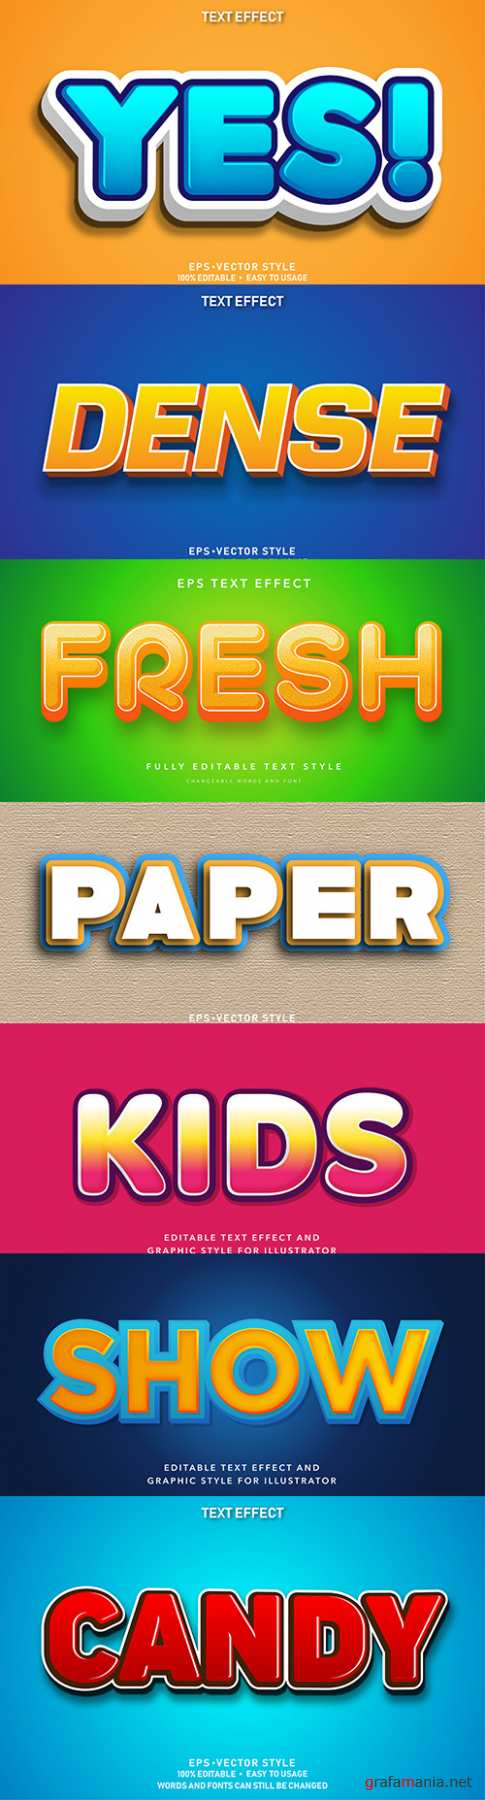 Editable font effect text collection illustration design 58